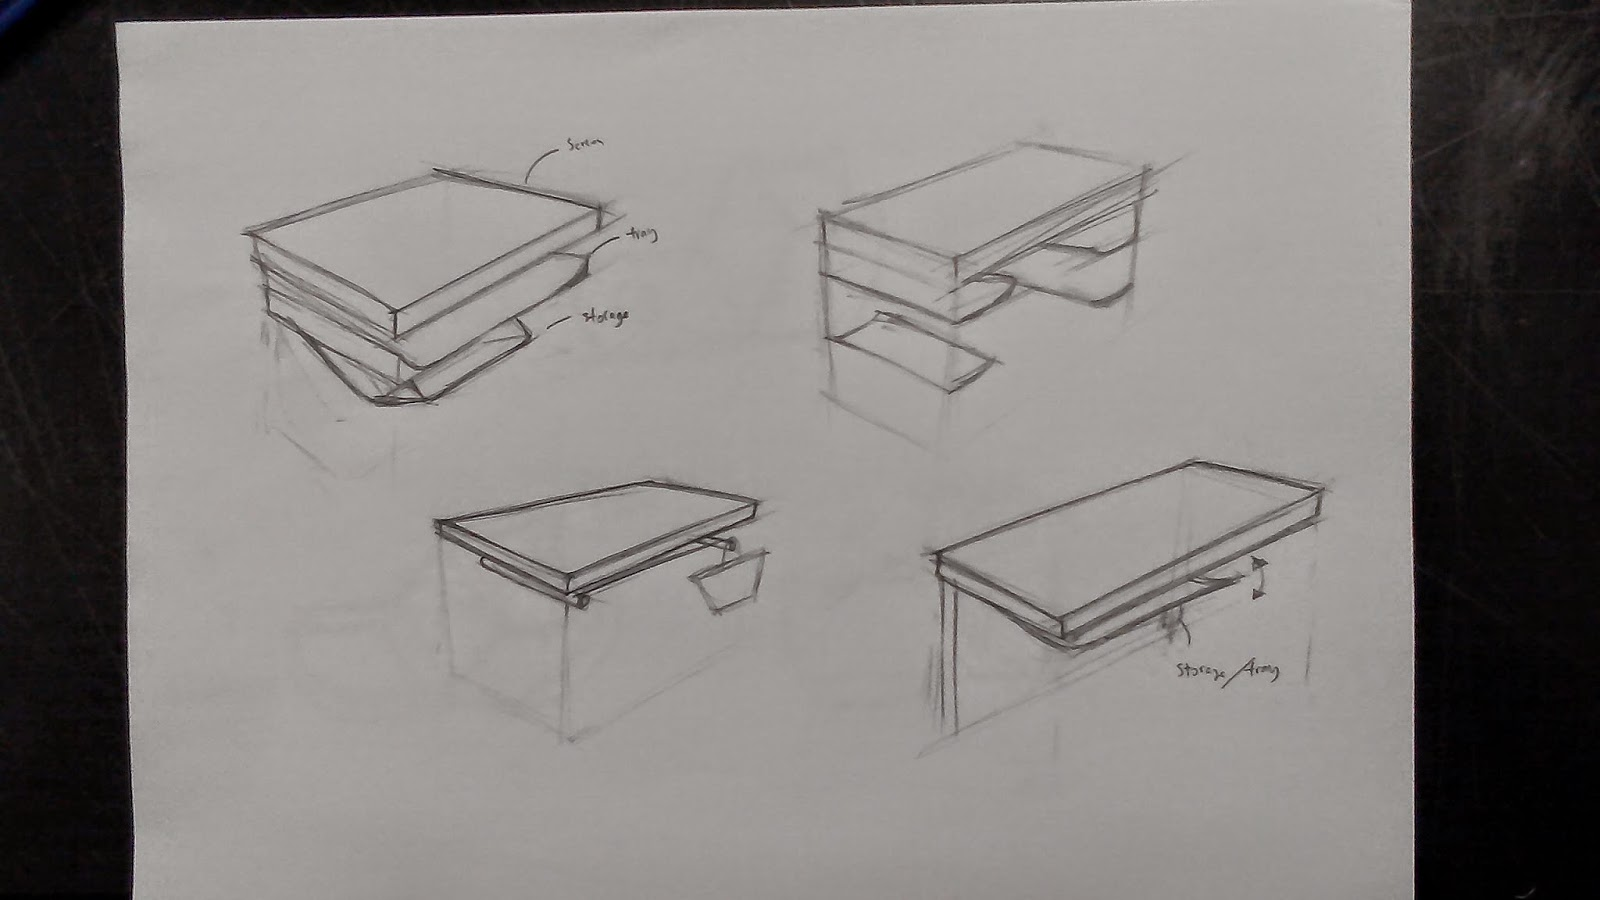 Merveilleux The Table Sketches Were Done By Wen Li . We Planned To Design The Table  Which Could Let The Students To Put Their Belongings Under The Table .